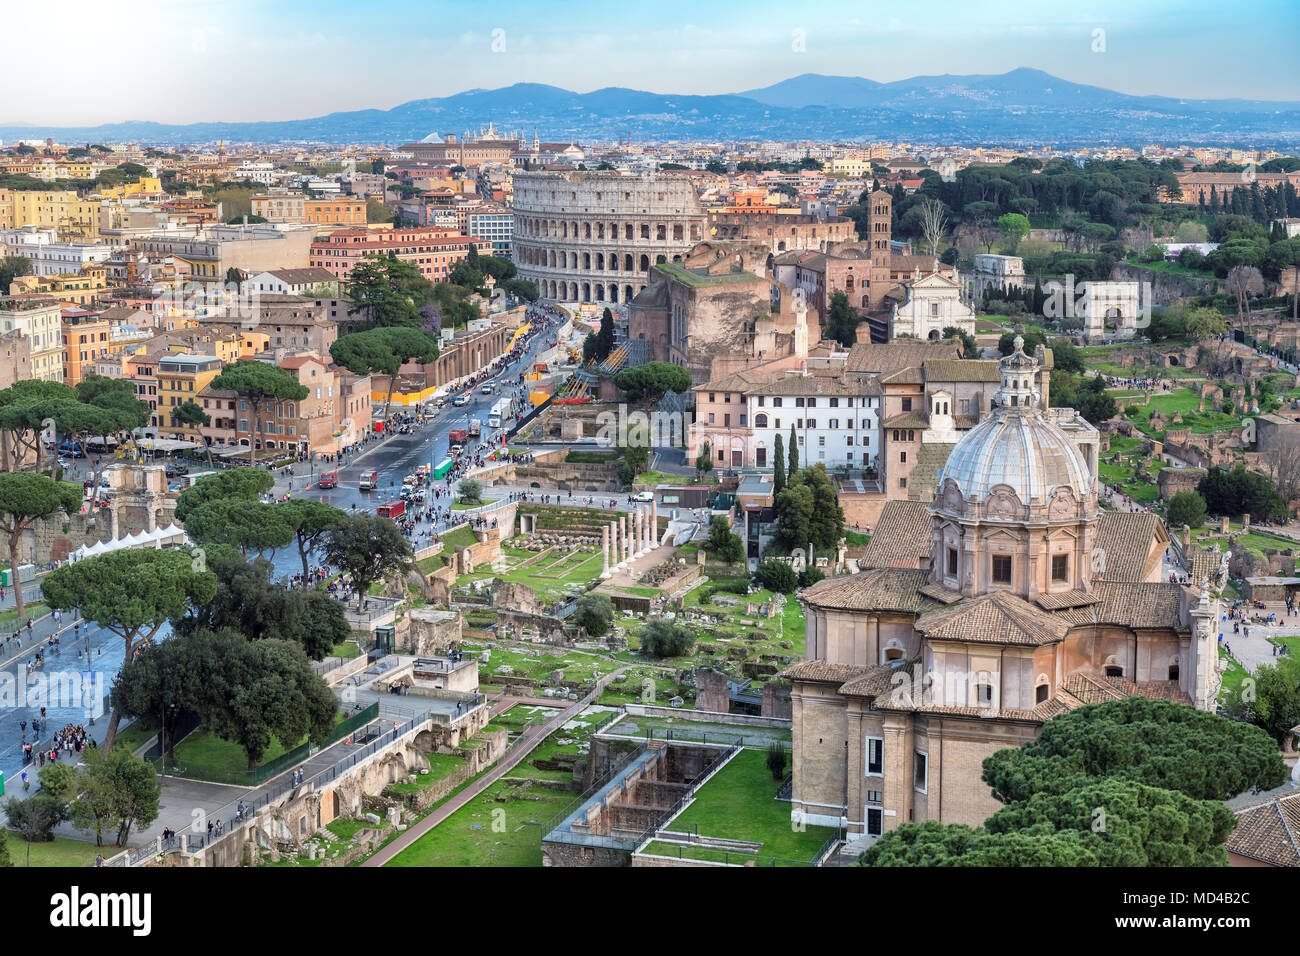 Rome skyline with Rome Colosseum and Roman Forum, Italy. - Stock Image